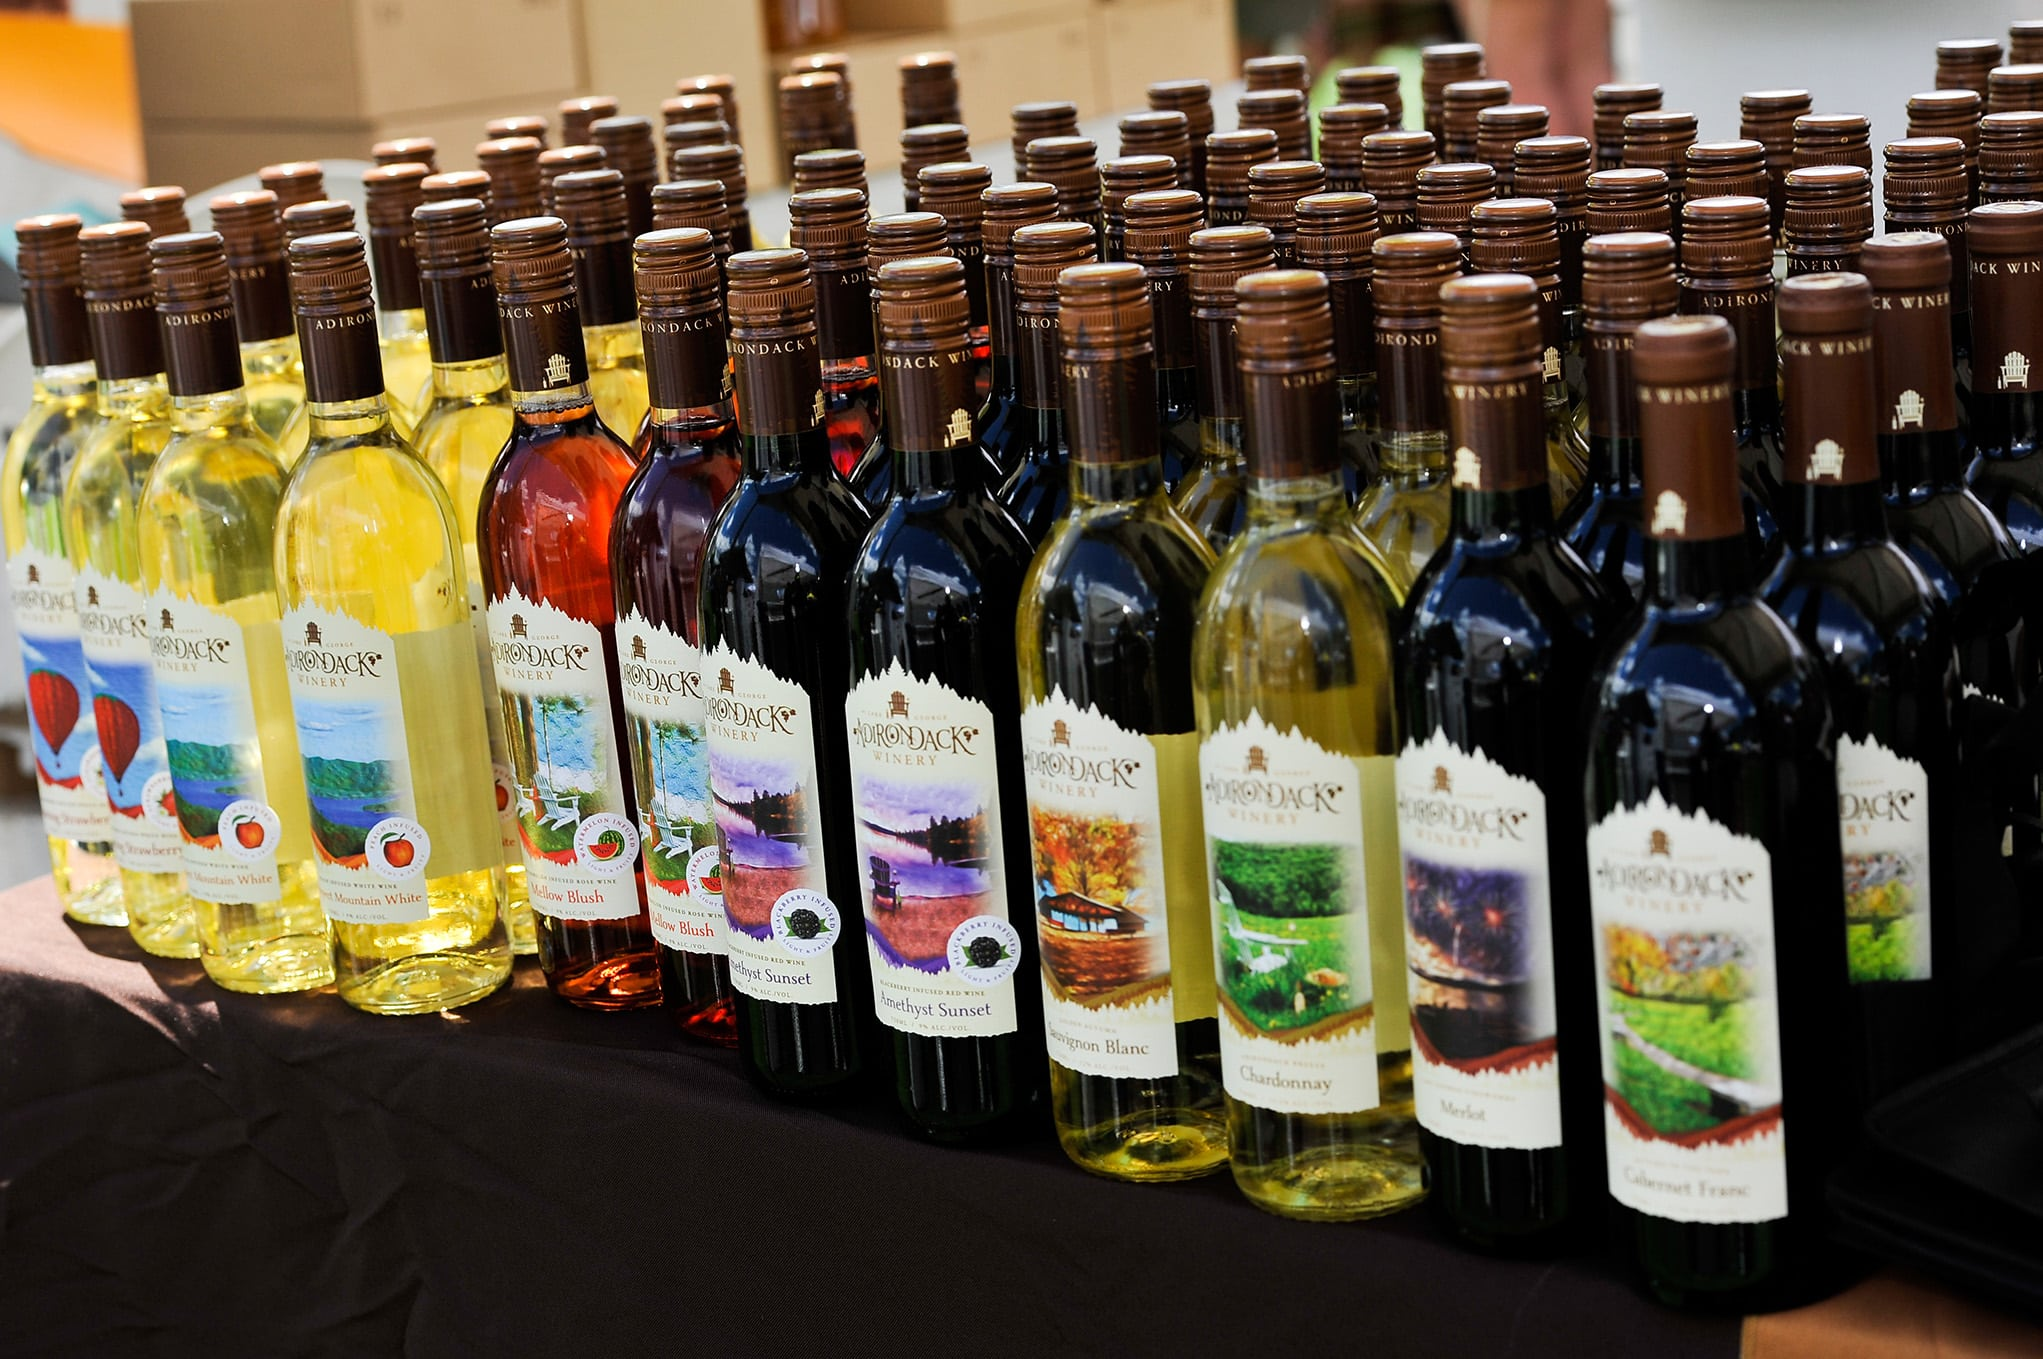 adk winery wine bottles lines up to sell